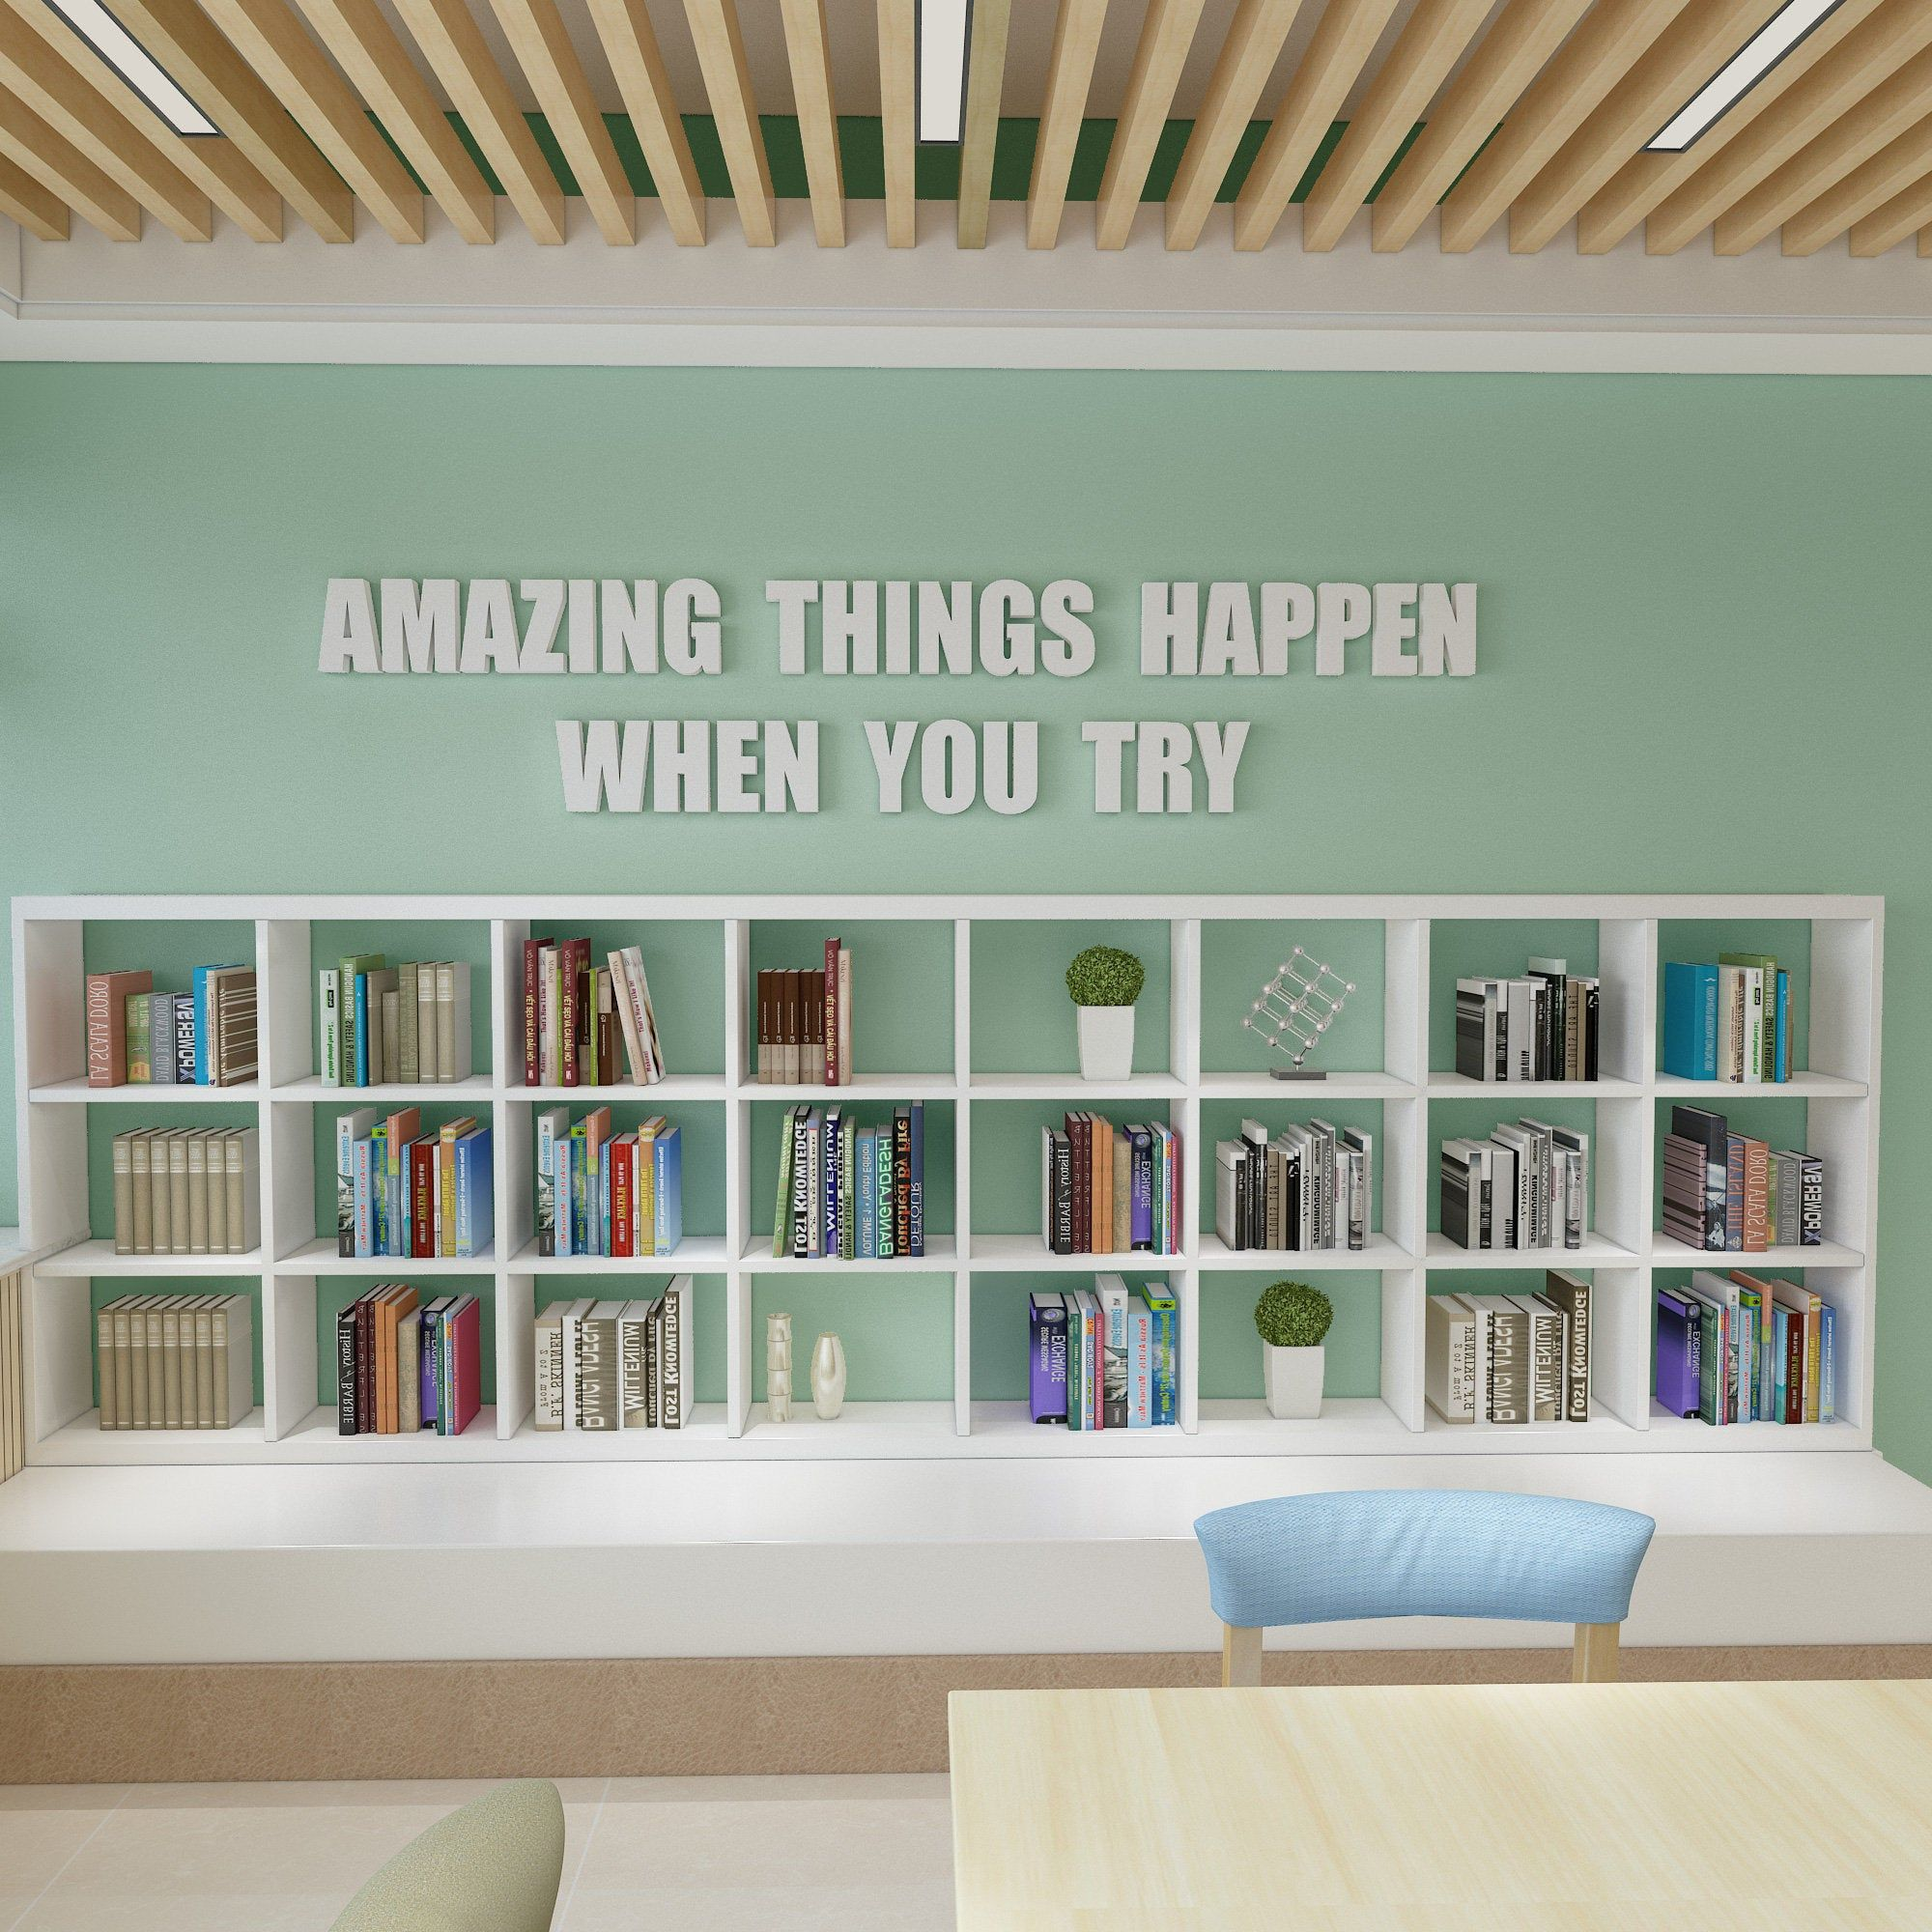 Amazing Things Happen When you Try Classroom Decor 3D Quote   Etsy